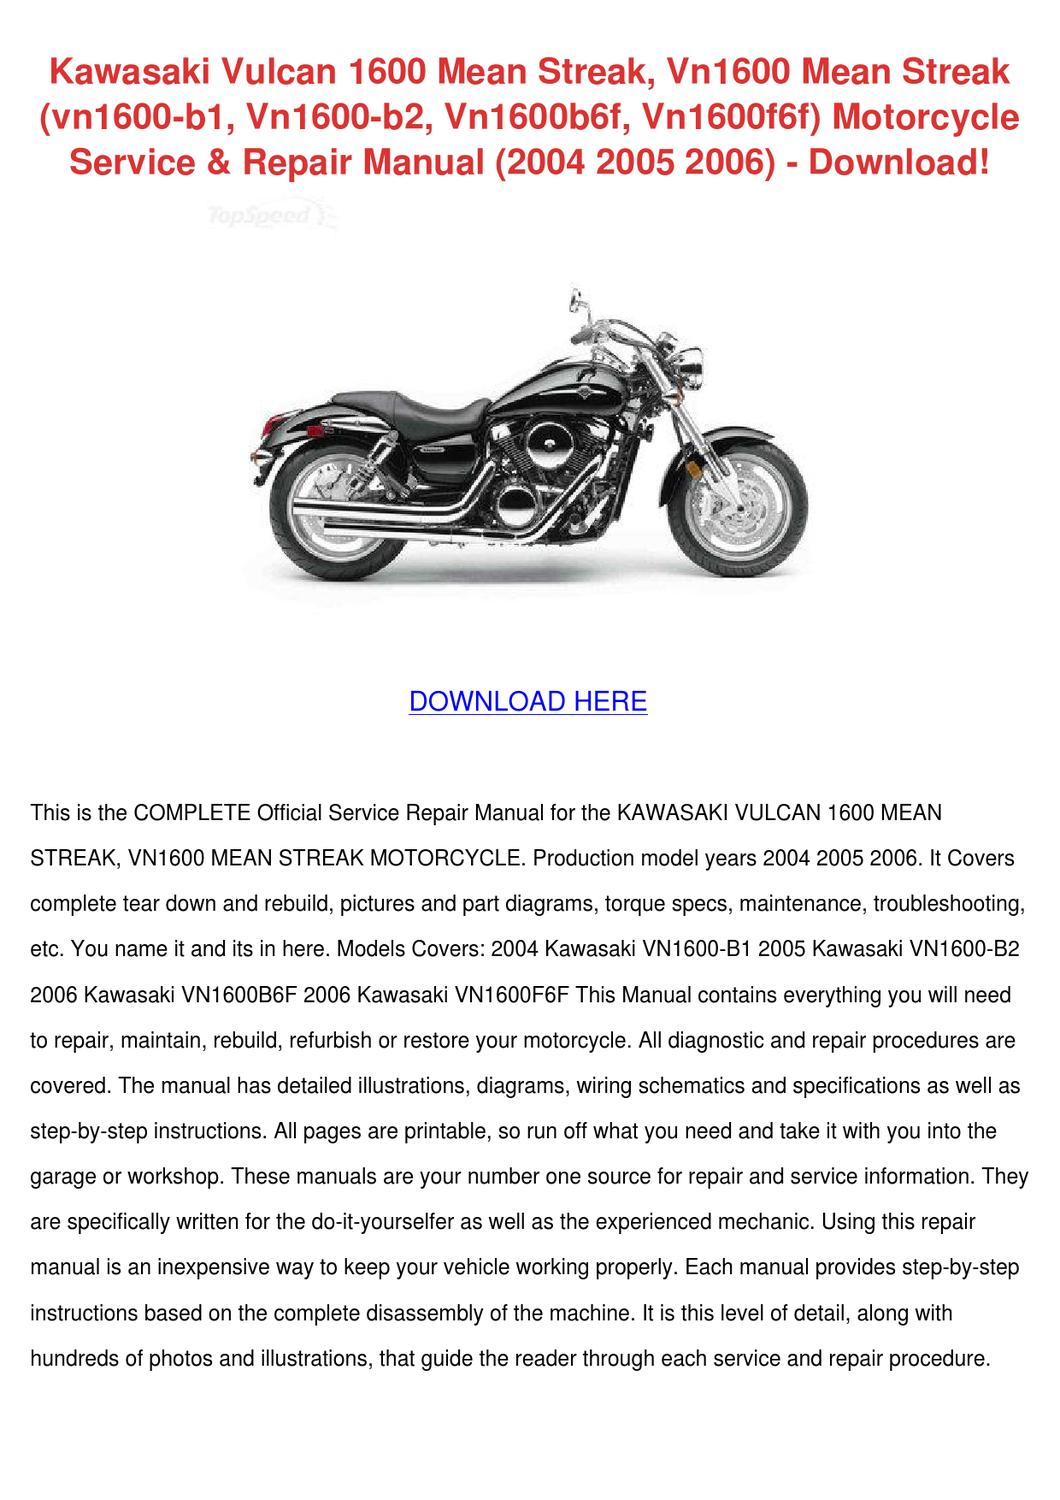 2004 Zx10r Wiring Diagram - Catalogue of Schemas on